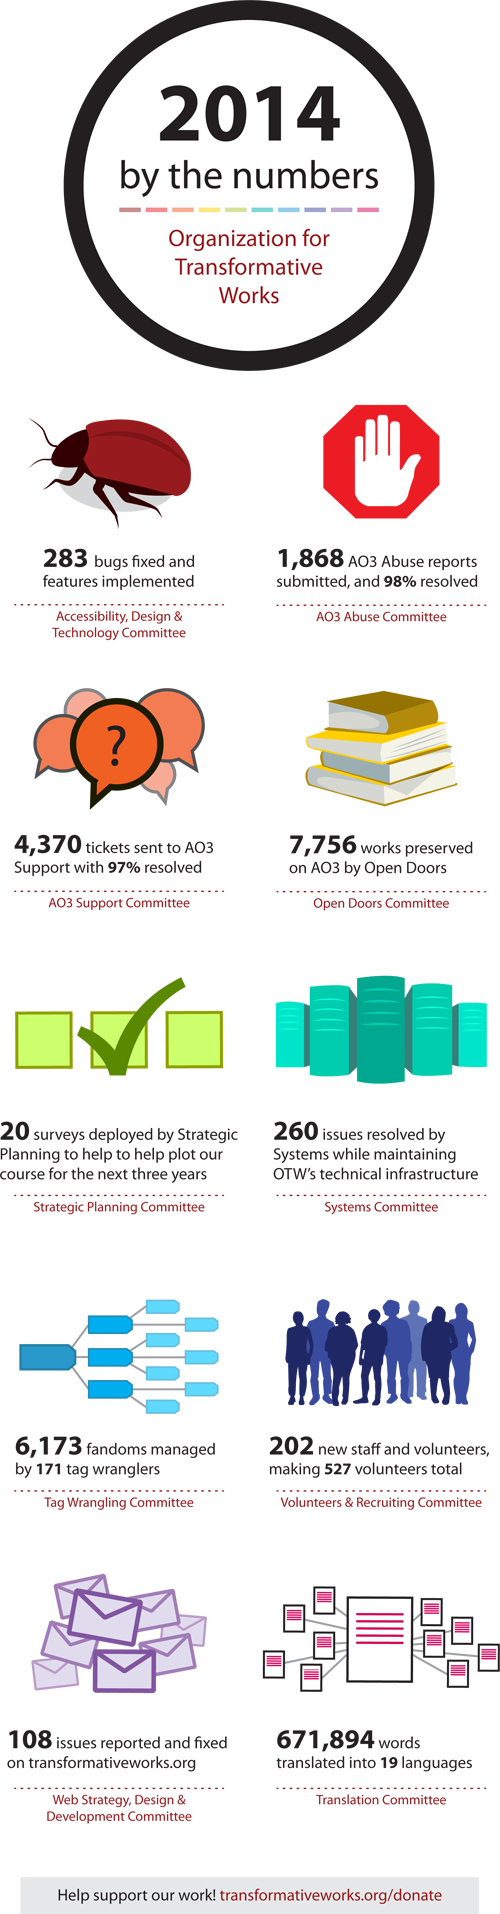 2014 By the Numbers: 283 bugs fixed and features implemented at AO3, 1,868 AO3 Abuse reports submitted, and 98% resolved, 4,370 tickets sent to AO3 Support with 97% resolved, 7,756 works preserved on AO3 by Open Doors, 20 surveys deployed by Strategic Planning to help plot our course for the next 3 years, 260 issues resolved by Systems while maintaining OTW's infrastructure, 16,173 fandoms managed by 171 tag wranglers, 202 new staff and volunteers added making 527 volunteers total, 108 issues reported and fixed on transformativeworks.org, 671,894 words translated by our translation volunteers into 19 languages